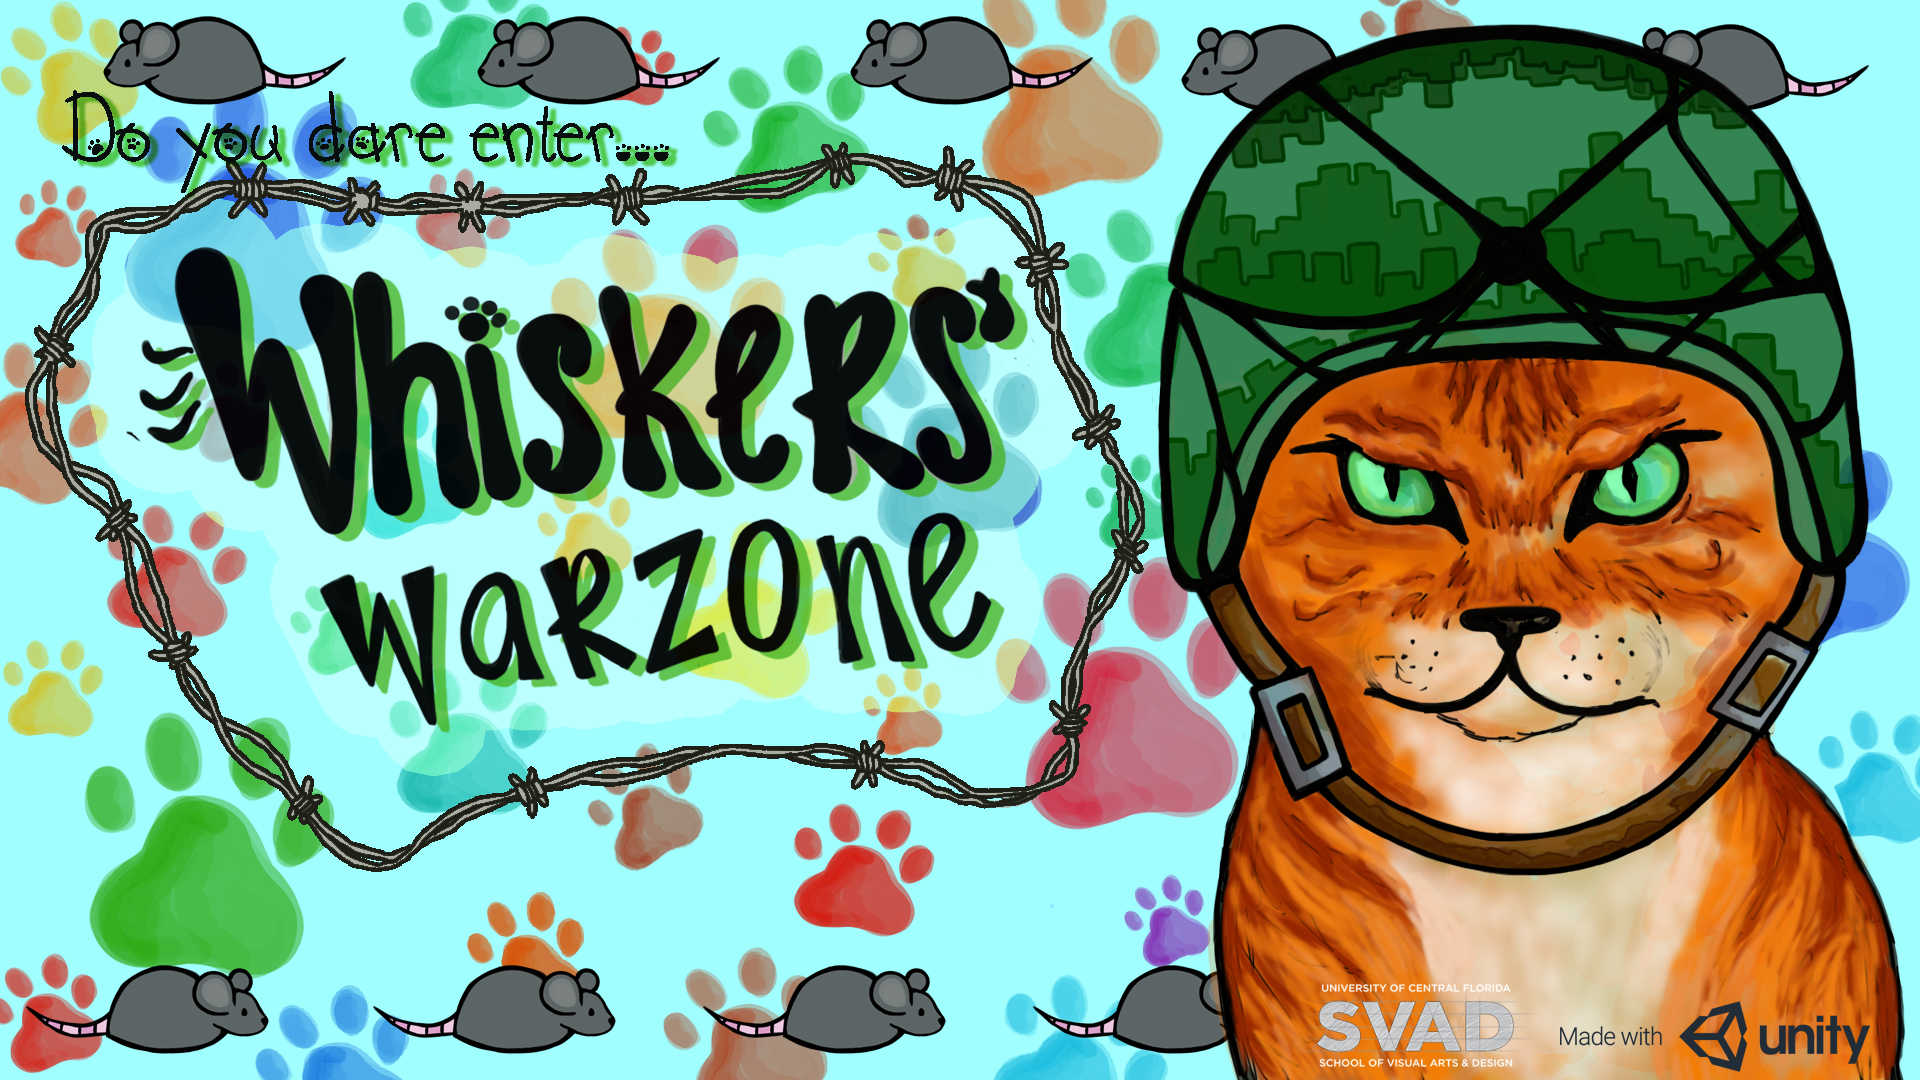 Whiskers' Warzone